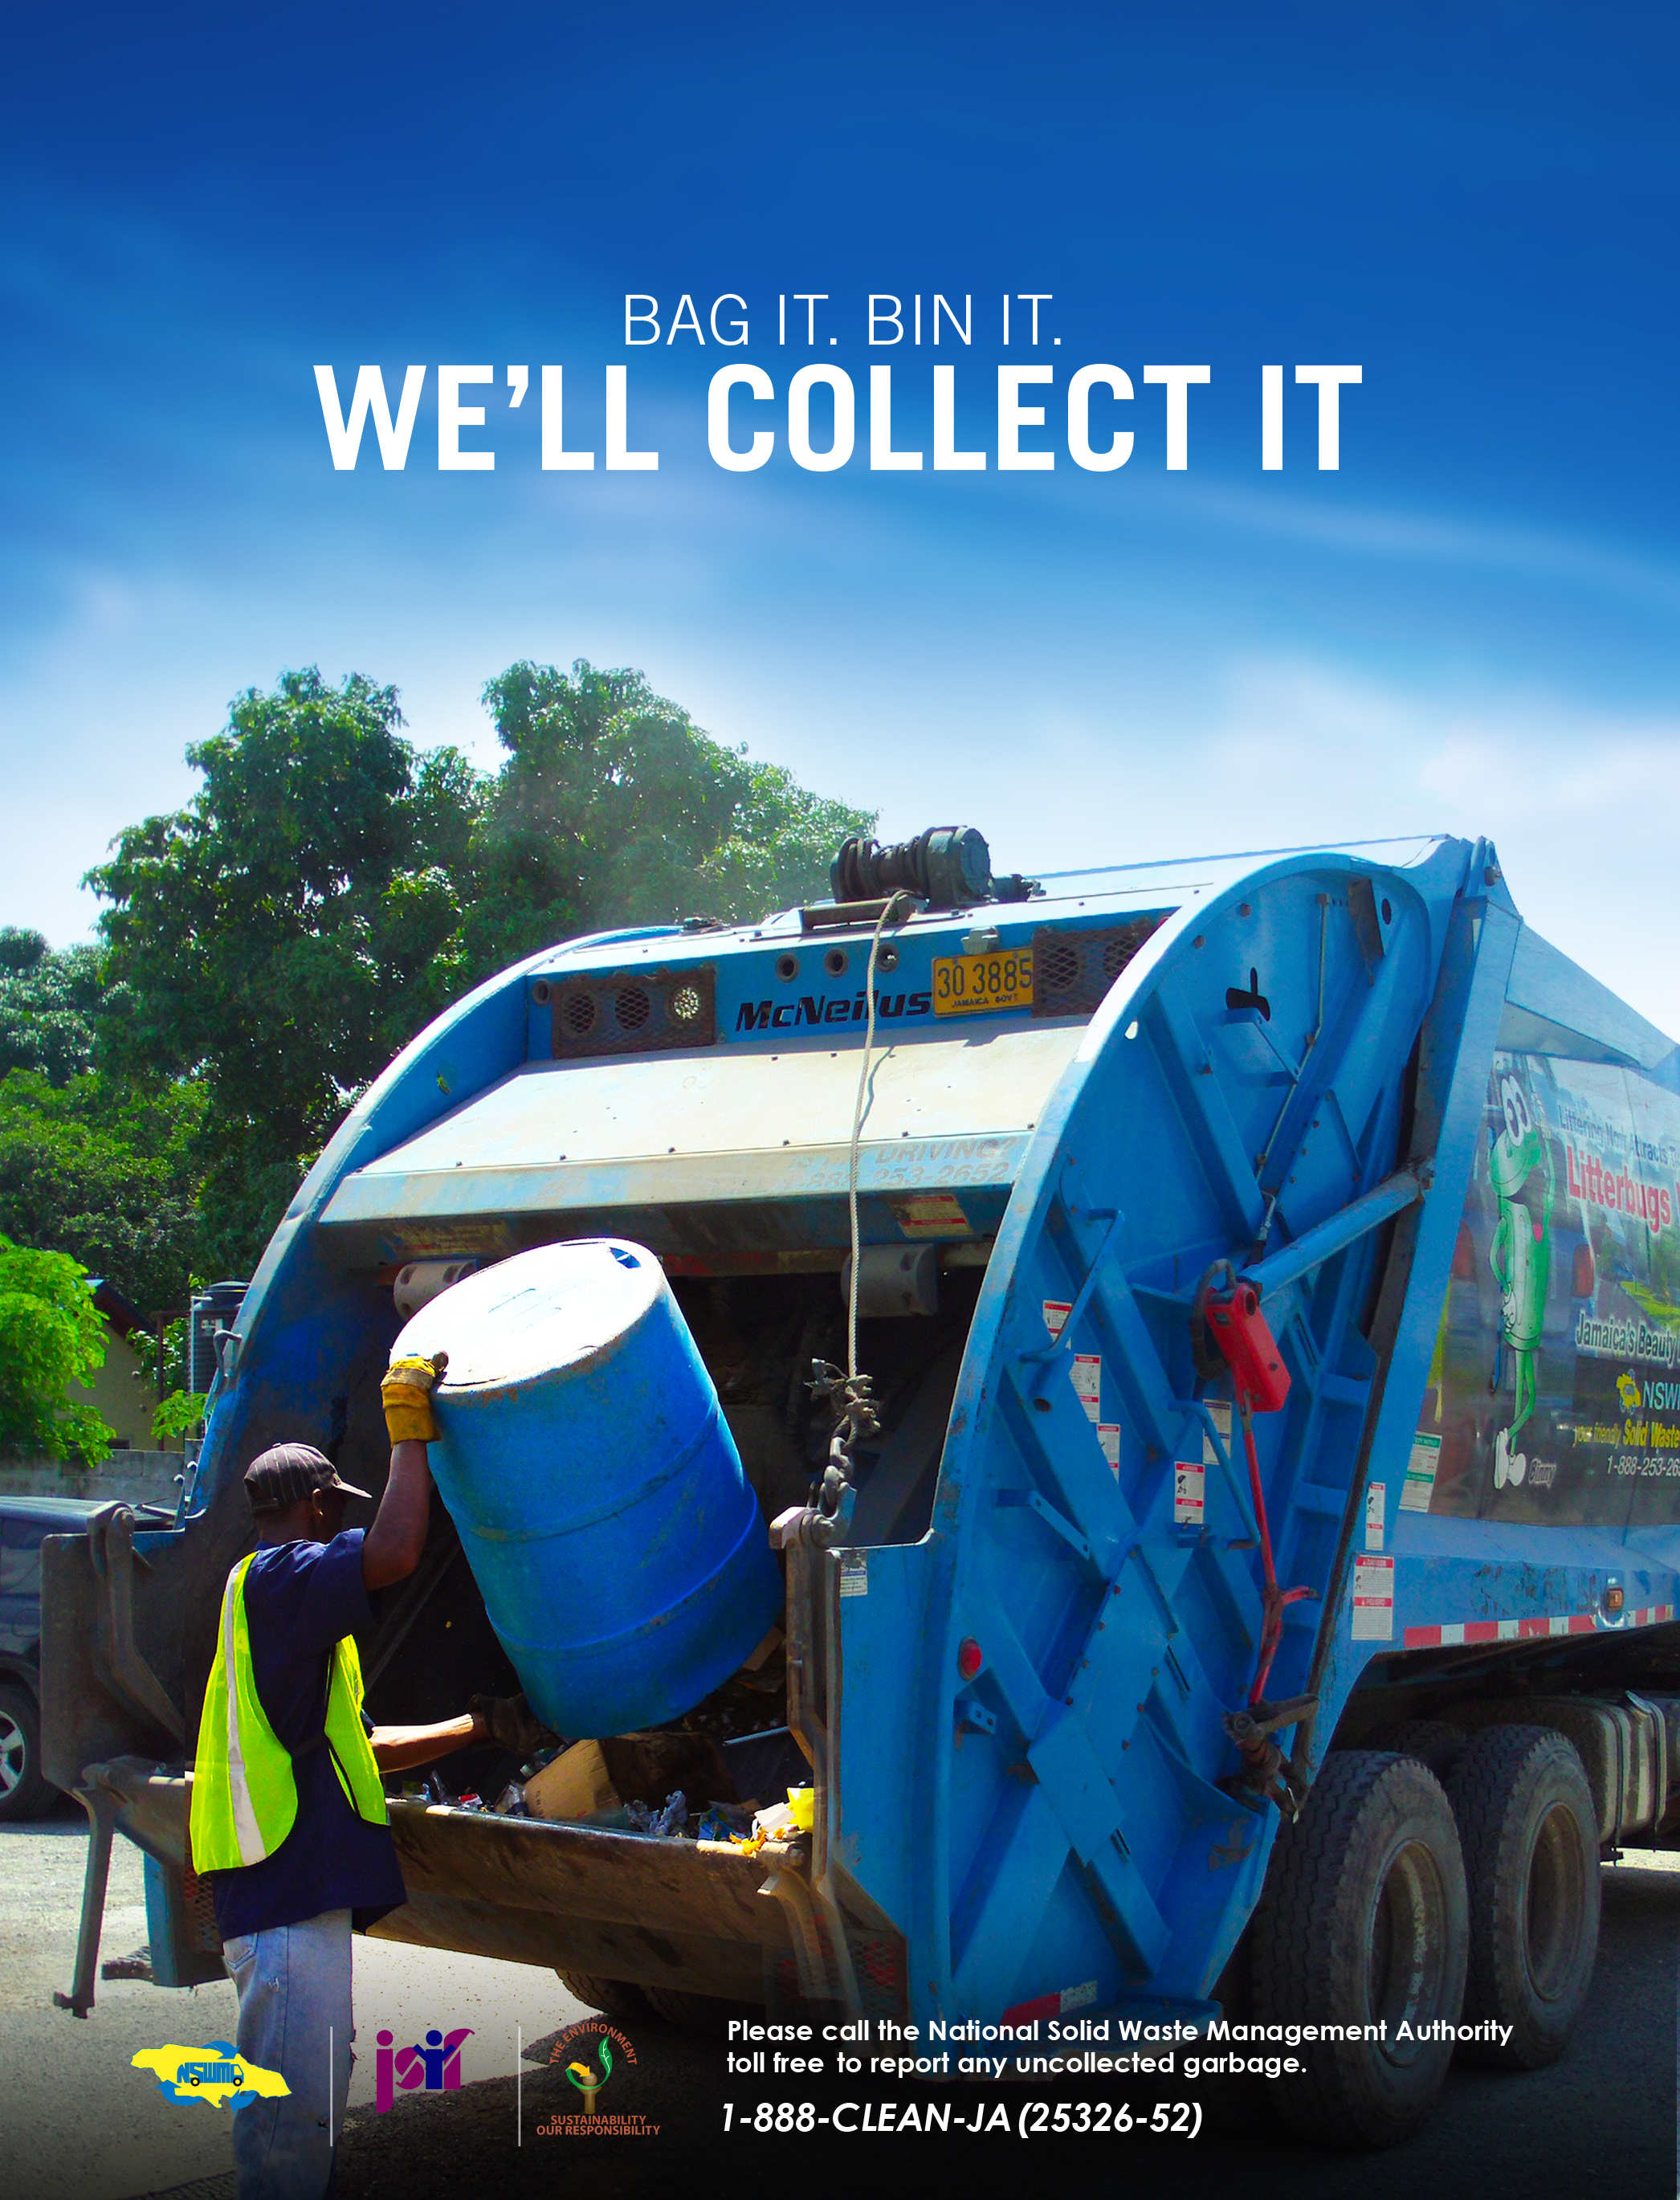 NSWMA WELL COLLECT IT2.jpg